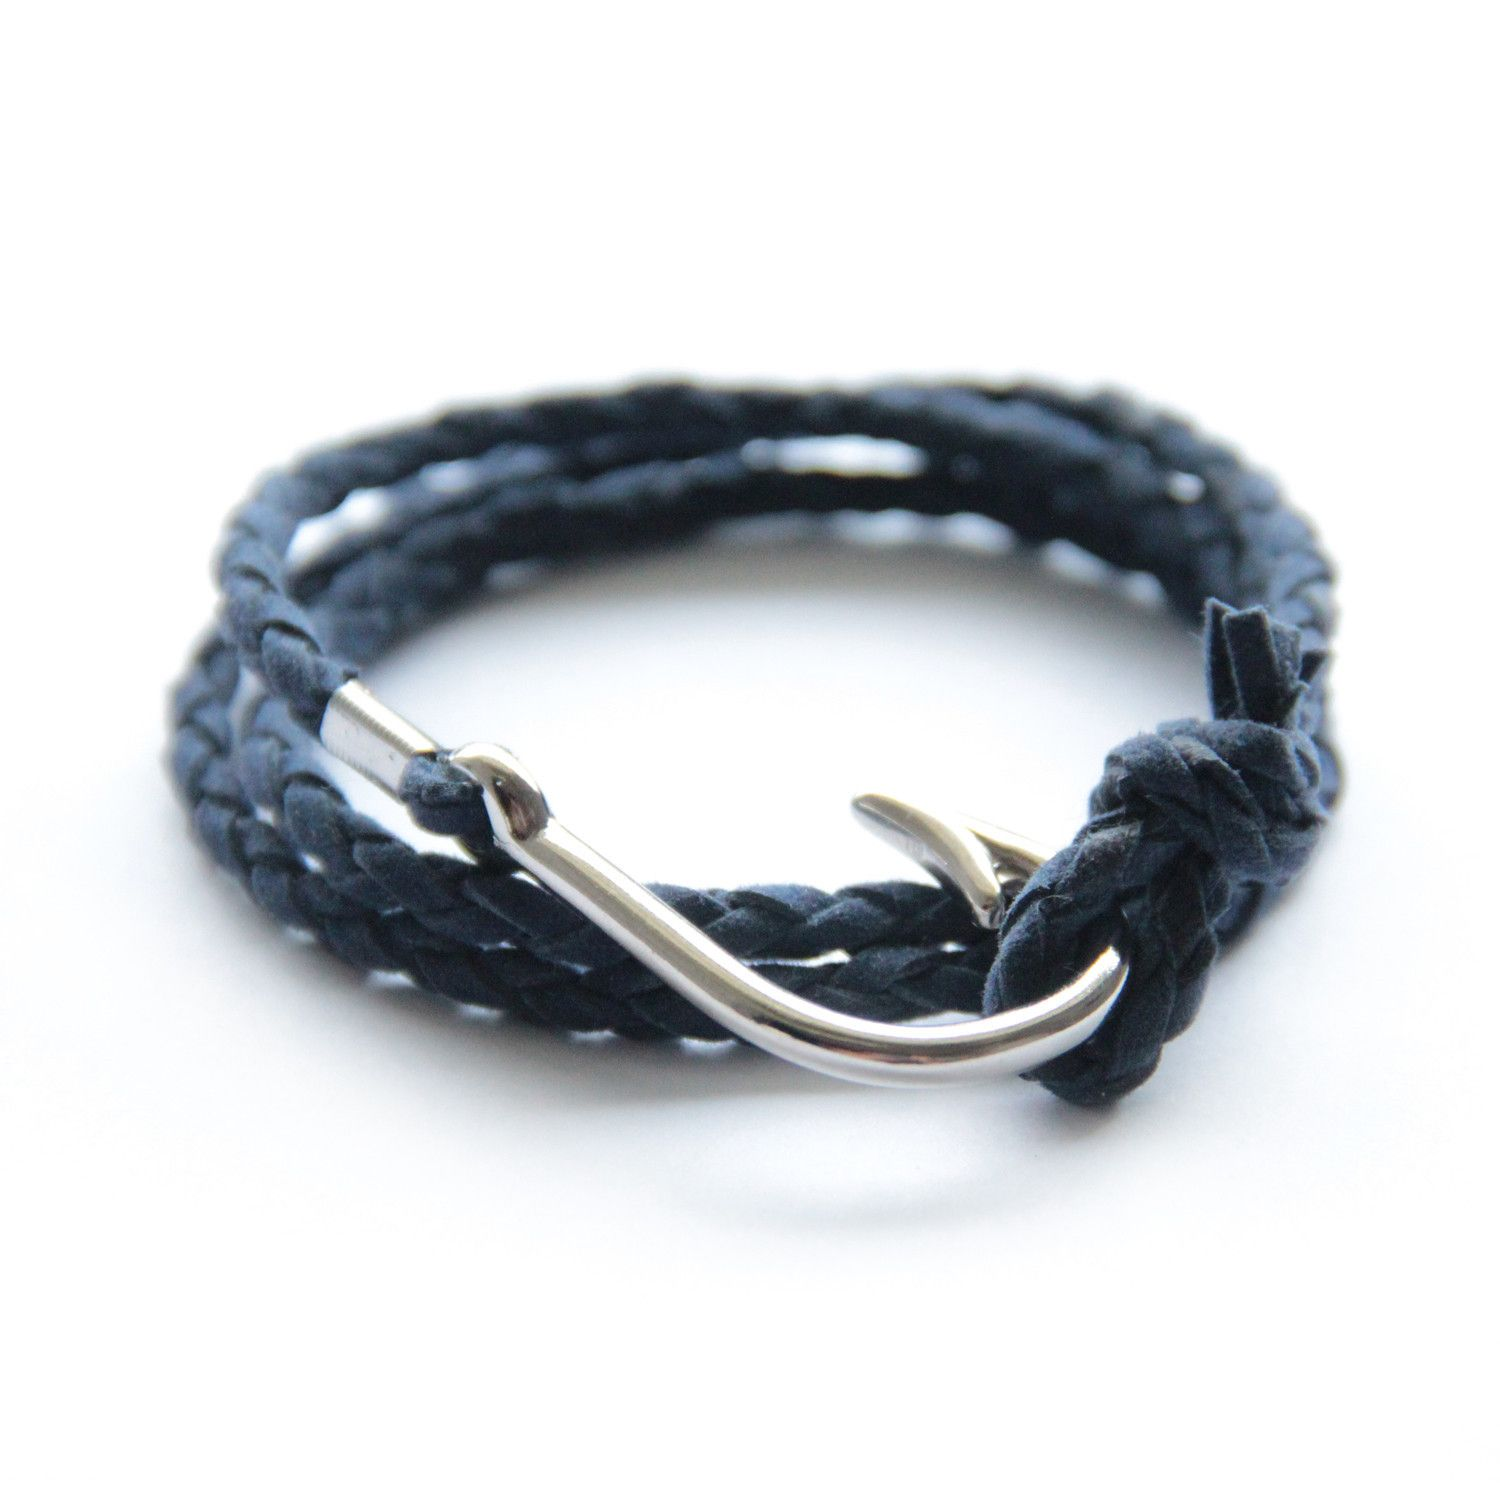 nautics sailing rope nautical of by bracelets awesome constantin handmade itm bracelet